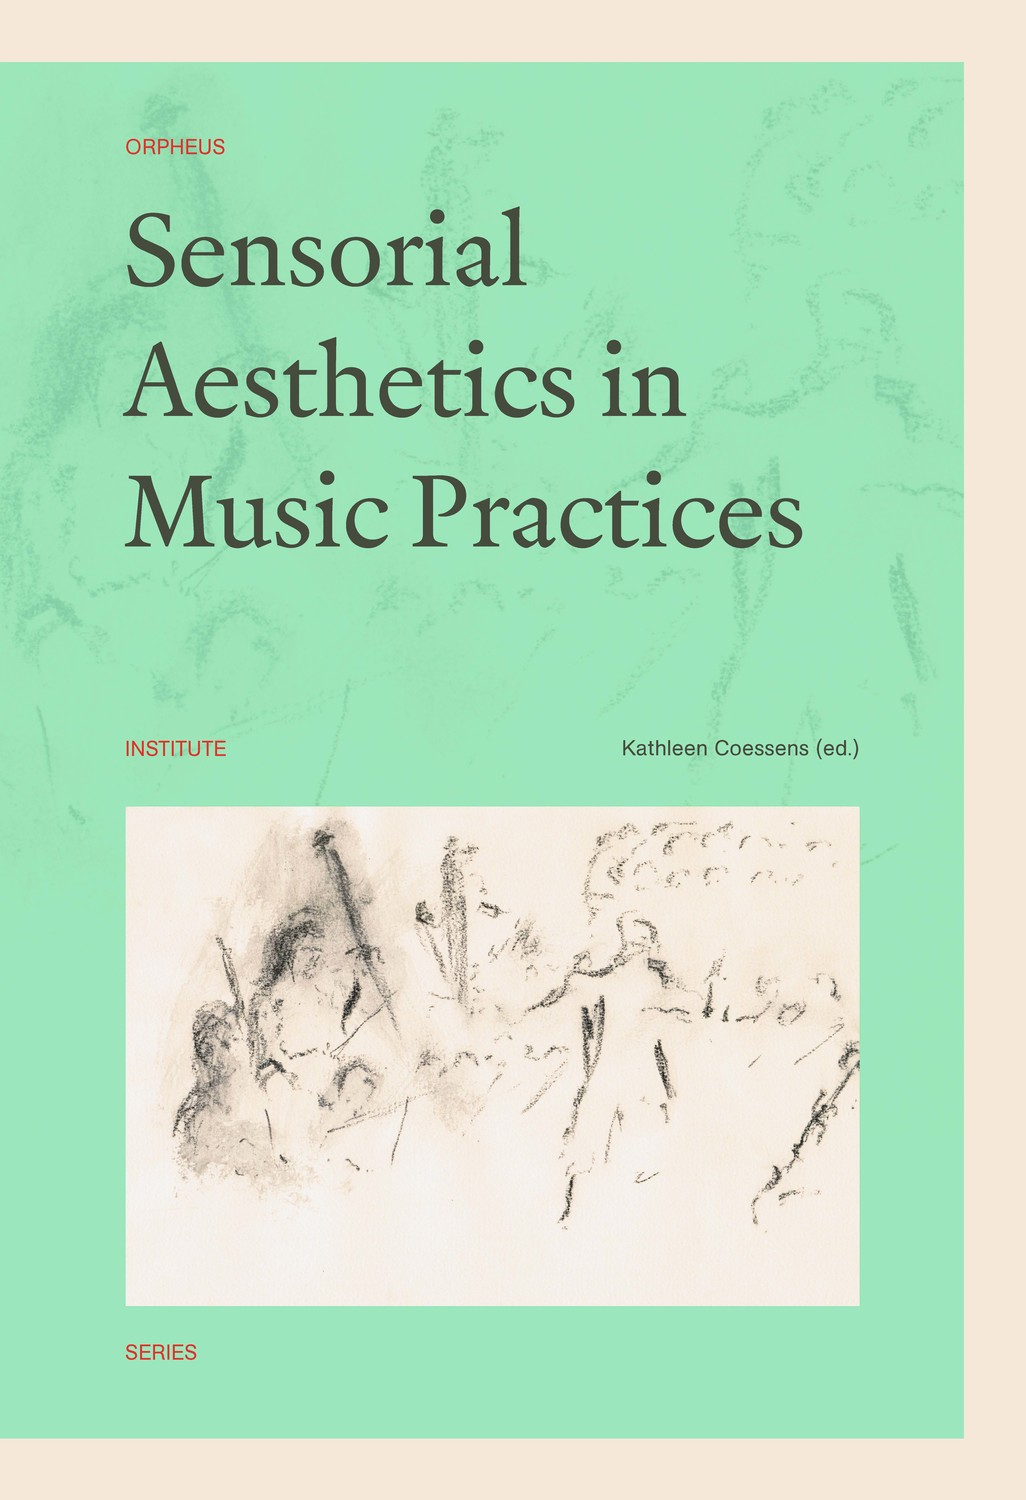 Sensorial Aesthetics in Music Practices